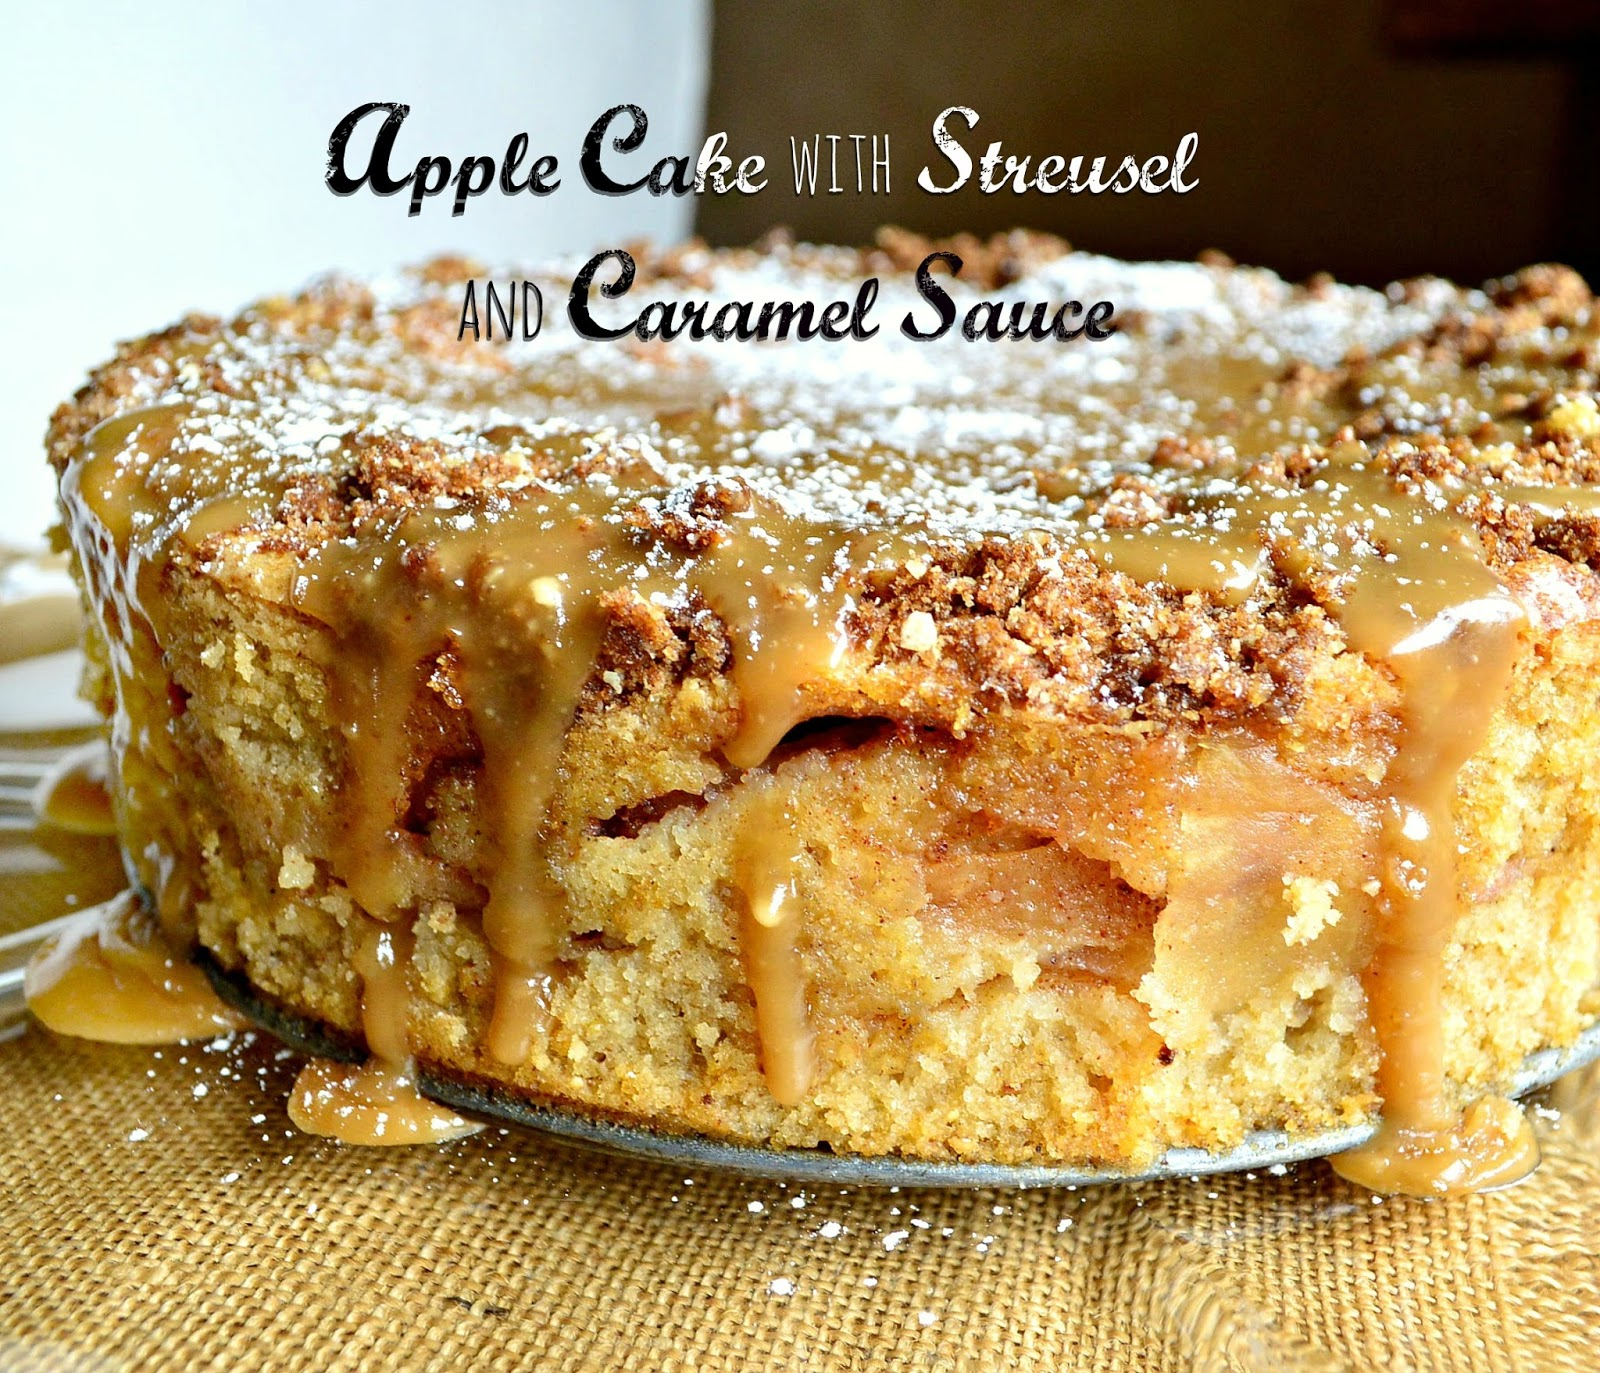 Passover apple cake with streusel and caramel sauce